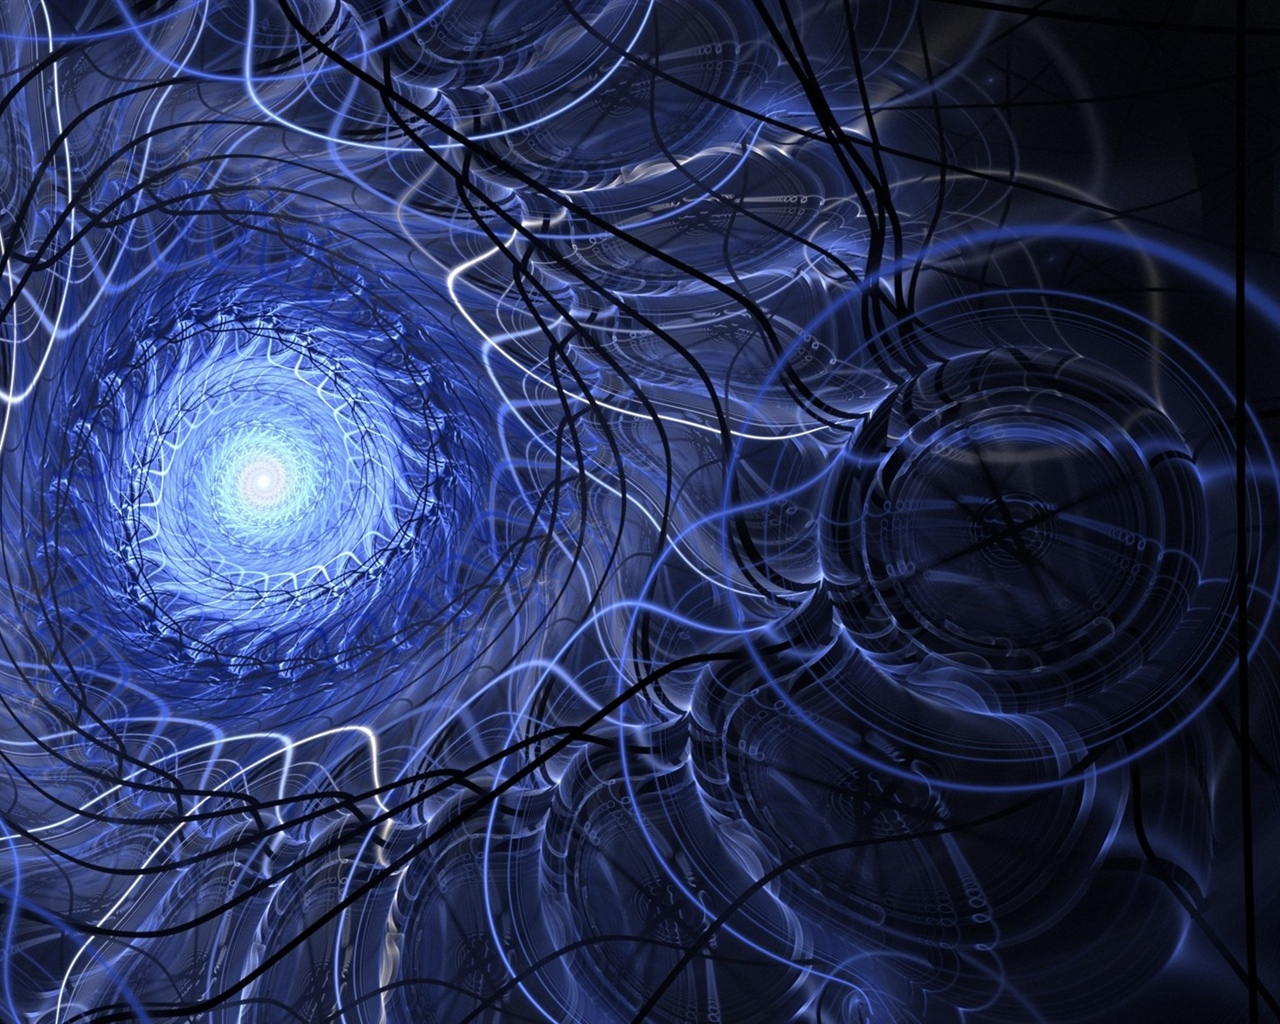 Channel, light, abstract, spiral, creative 1280x1024 wallpaper